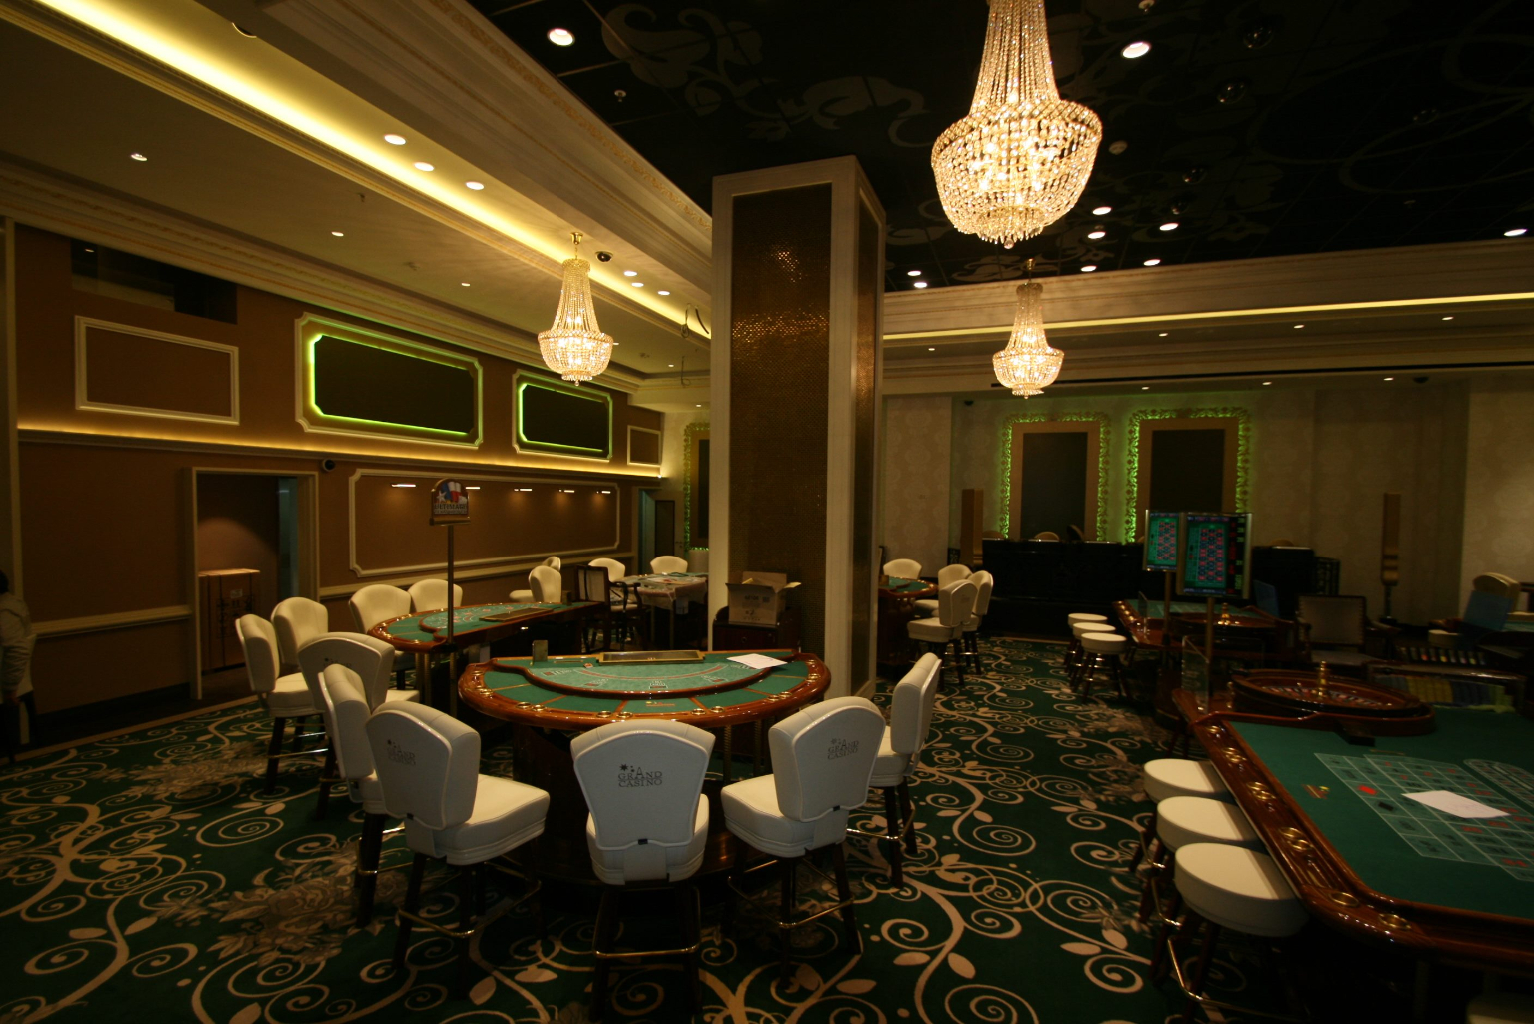 Grand Casino Marriott Bucuresti Bucharest placari pereti rame receptii usi bar bufet177